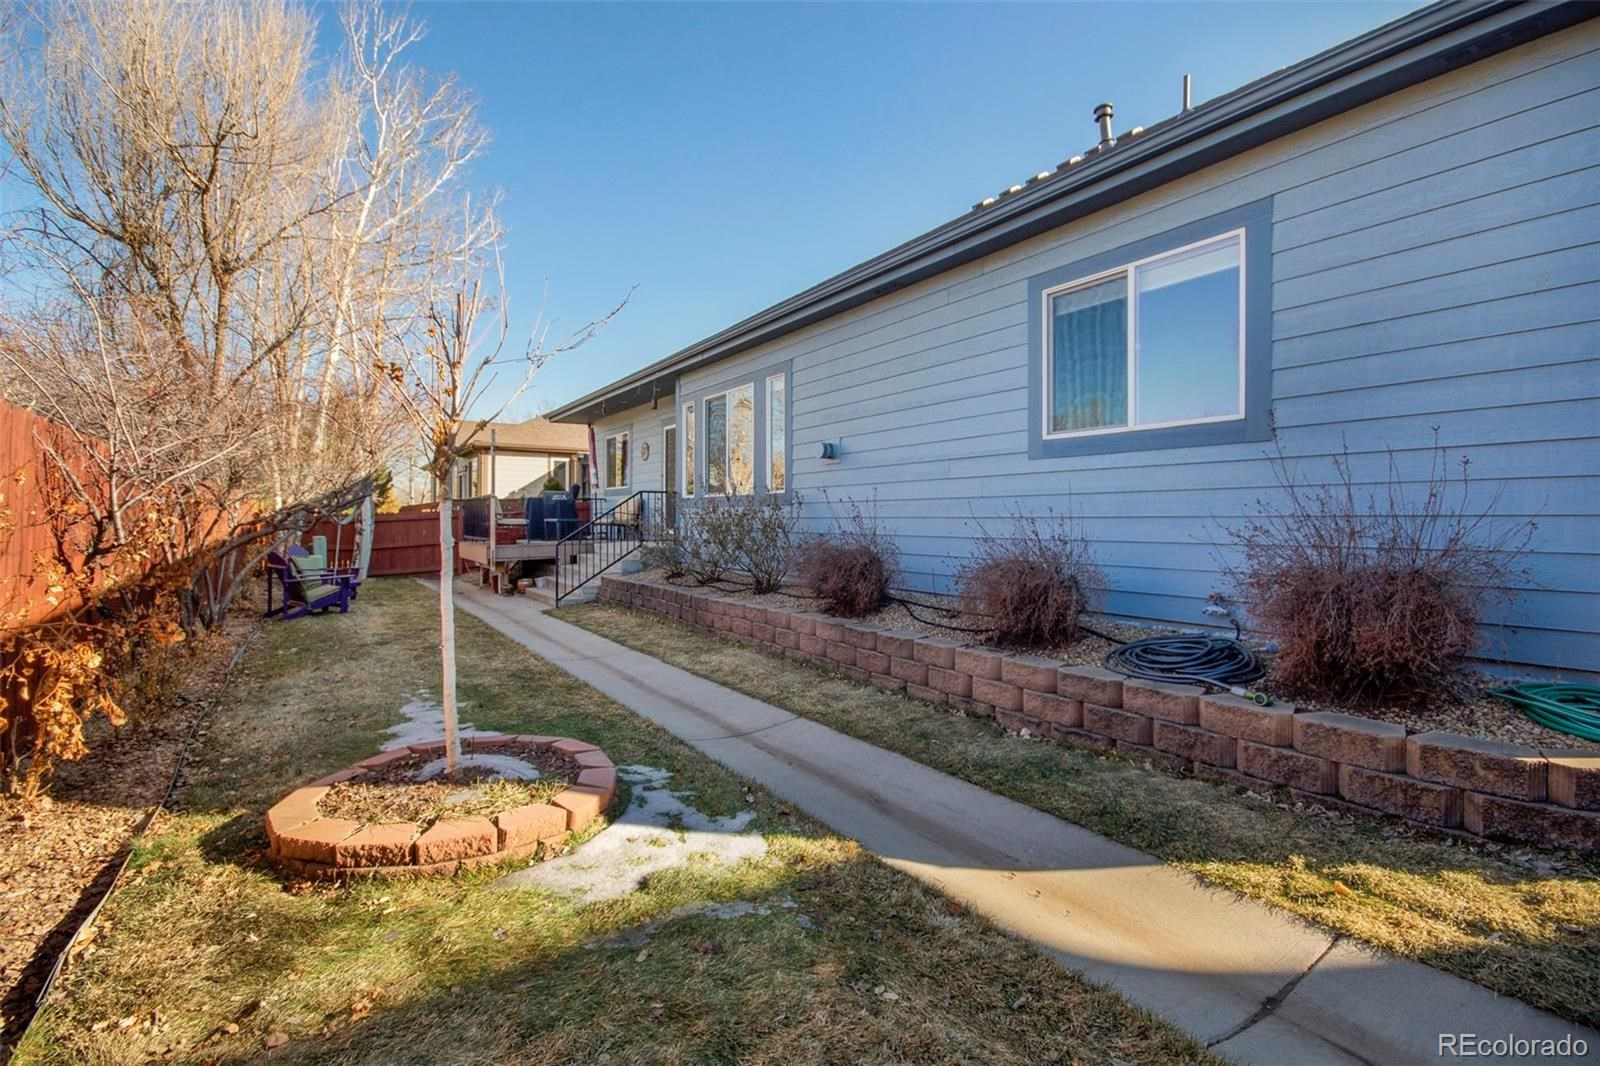 MLS# 5568243 - 27 - 8770 W 49th Circle, Arvada, CO 80002